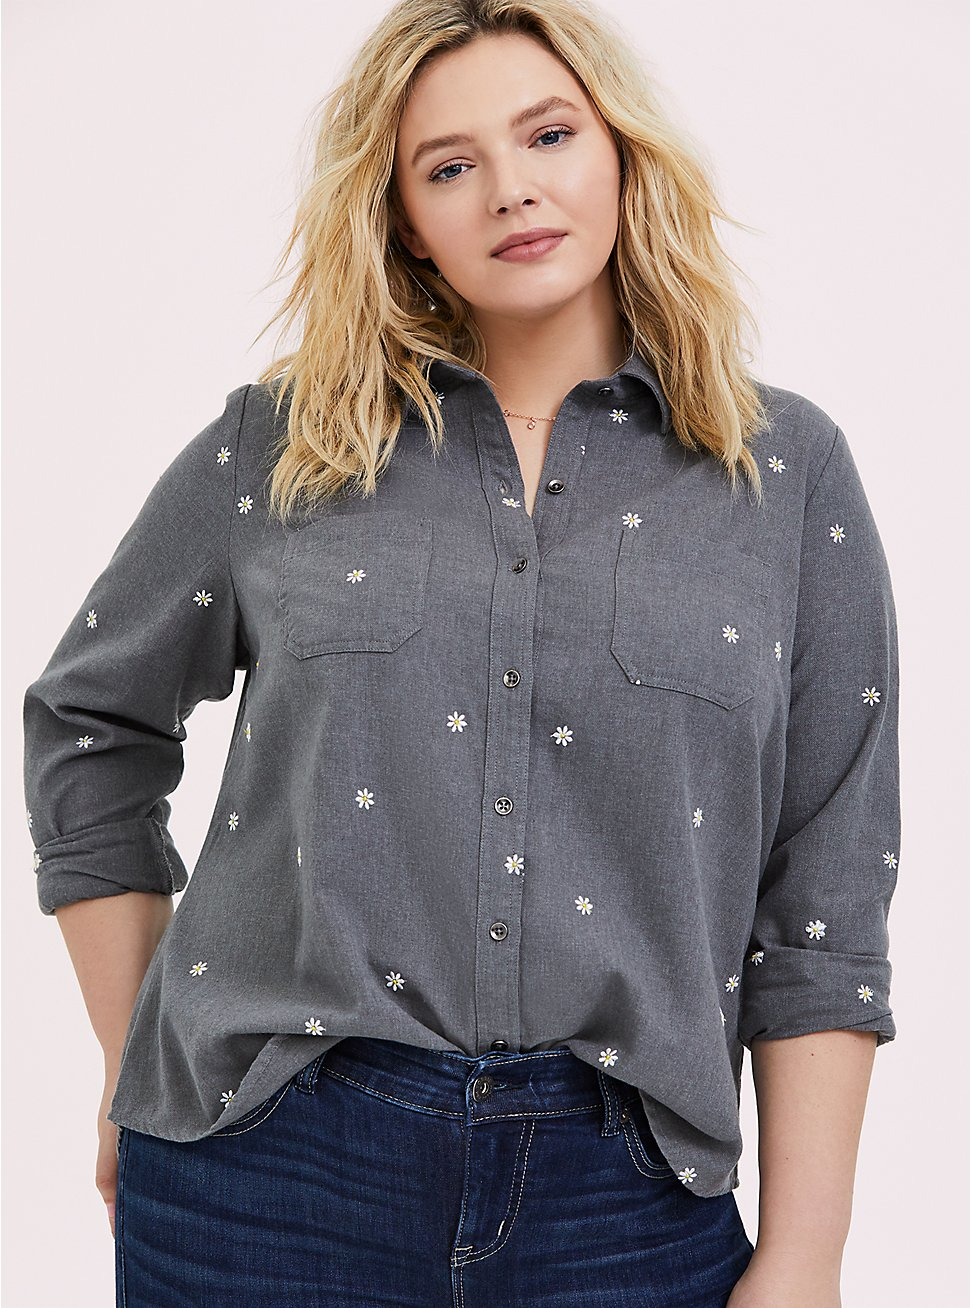 Taylor - Grey Denim Daisy Embroidered Button-Front Classic Fit Shirt, SMOKED PEARL, hi-res